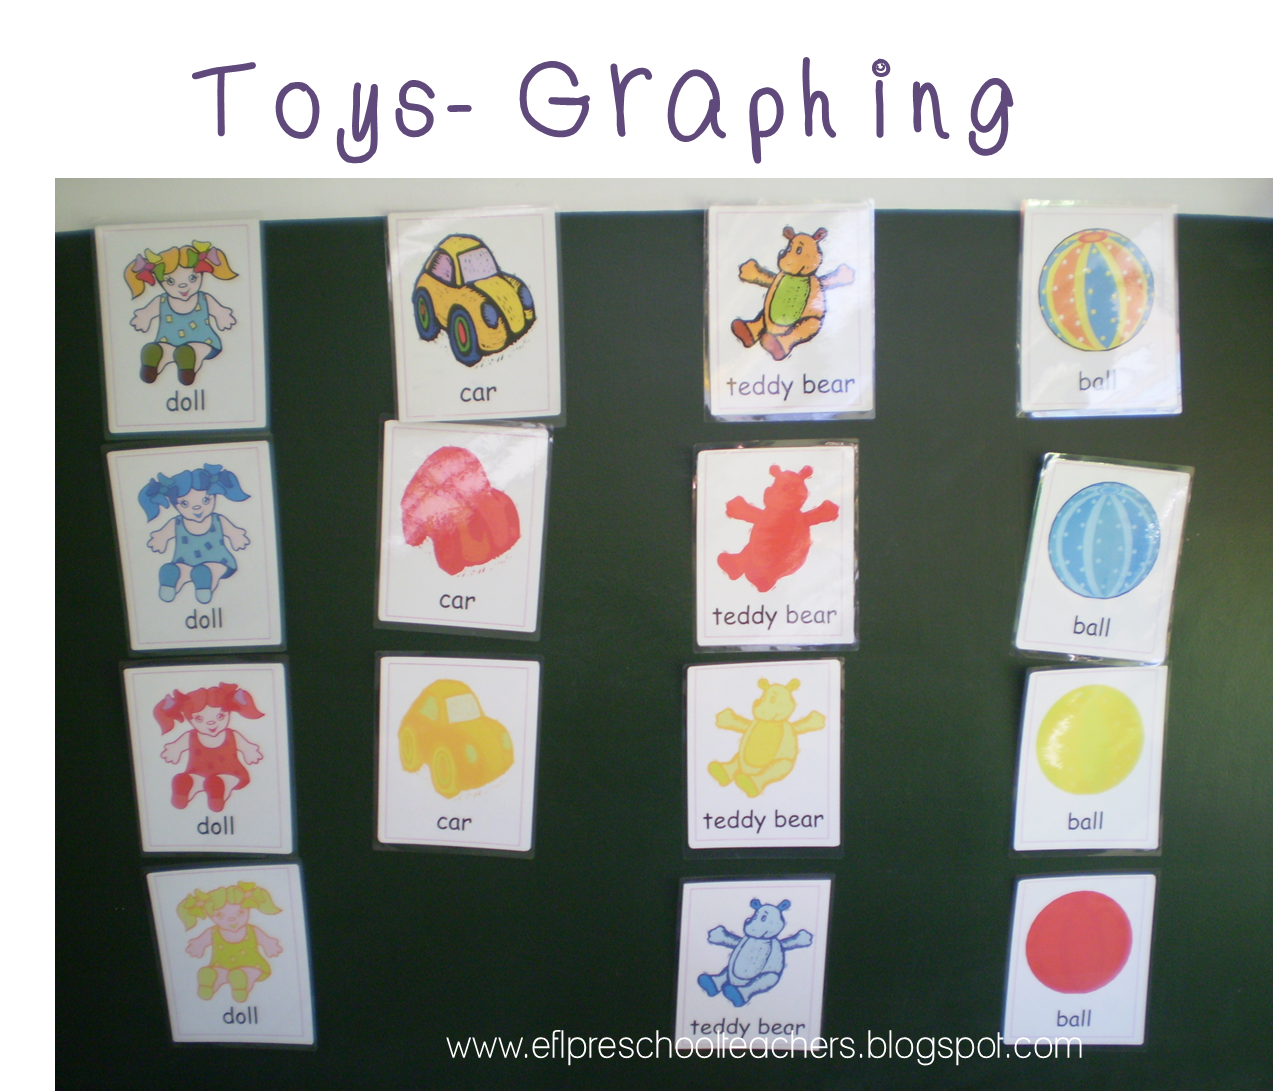 Esl Efl Preschool Teachers Toys